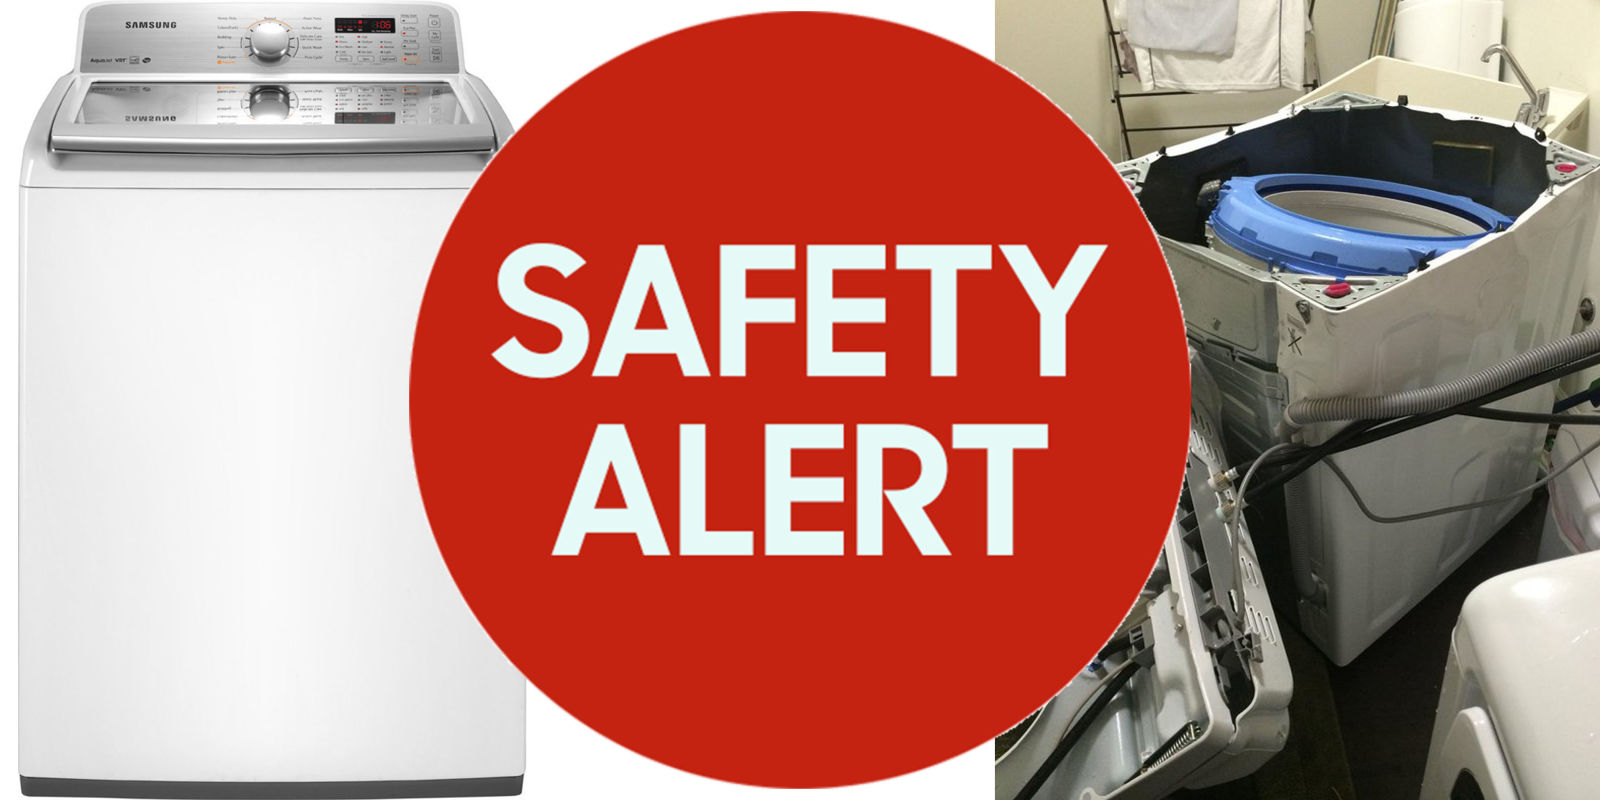 The best top load washer on the market - Samsung Washing Machines Recalled Due To Risk Of Explosion Samsung Top Loader Recall